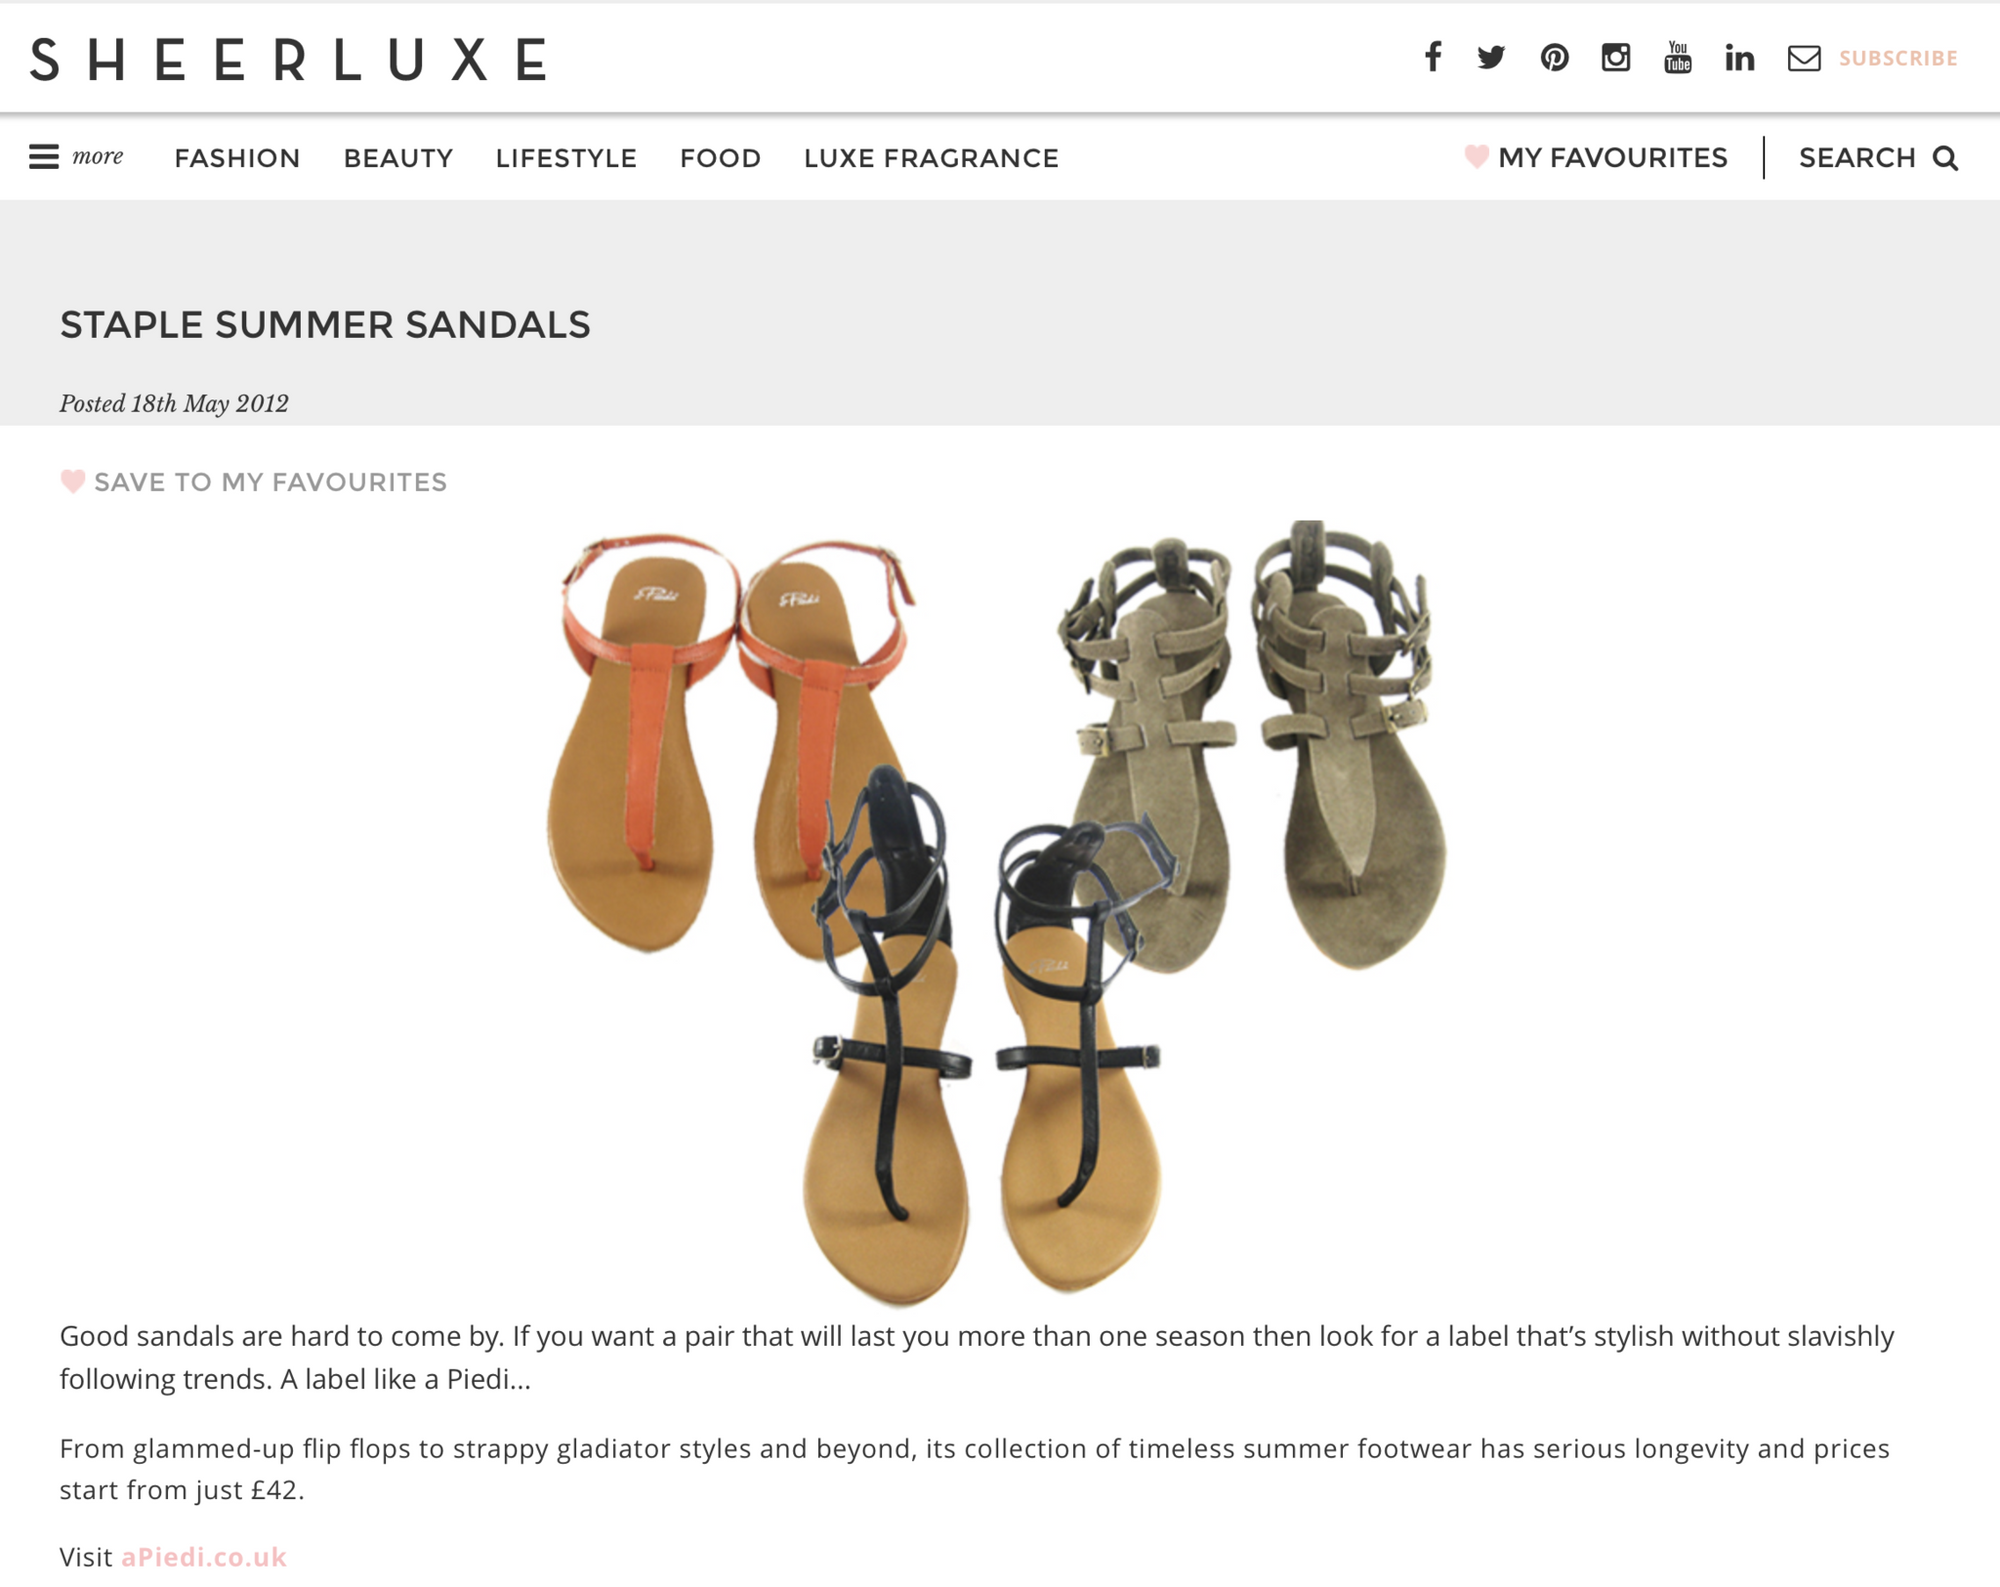 SheerLuxe.com, May 2012